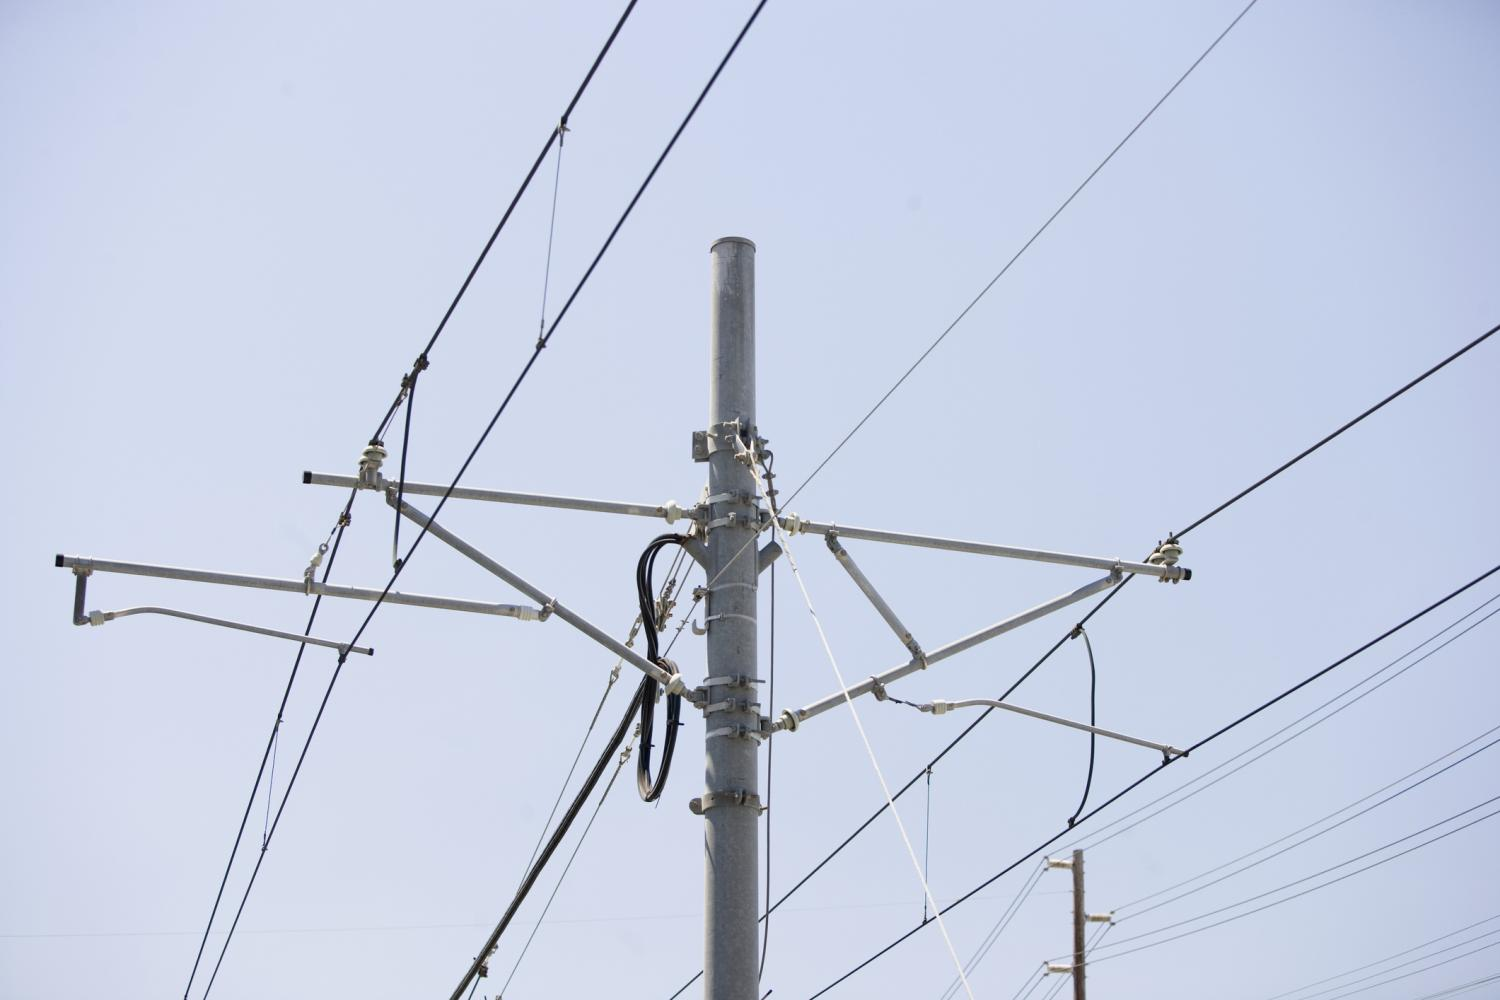 Ameren+has+reported+multiple+power+outages+Tuesday+morning.+It+currently+has+a+service+crew+assigned+to+the+project.+